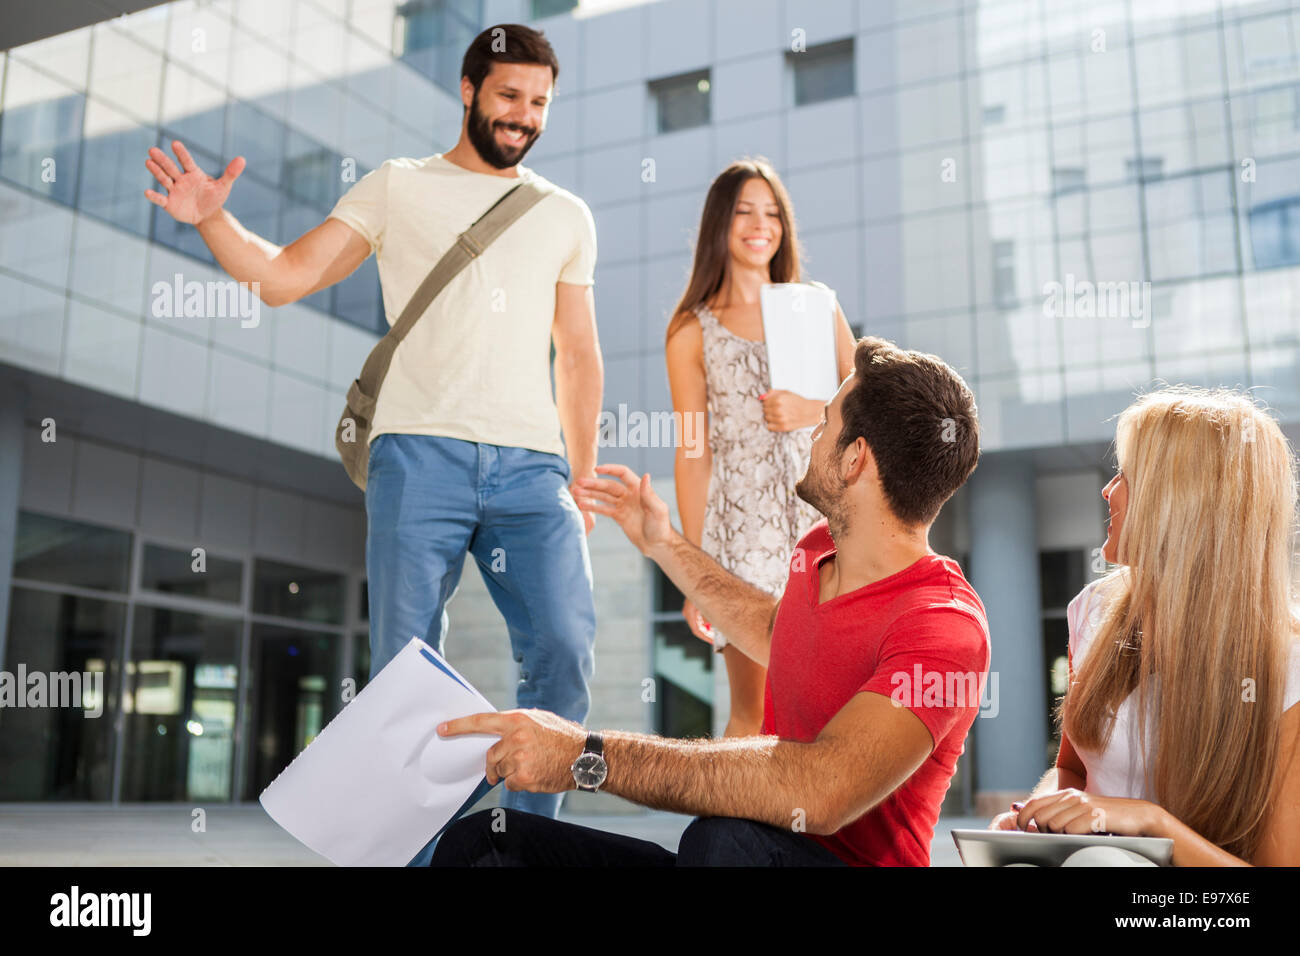 Group of students on campus grounds - Stock Image